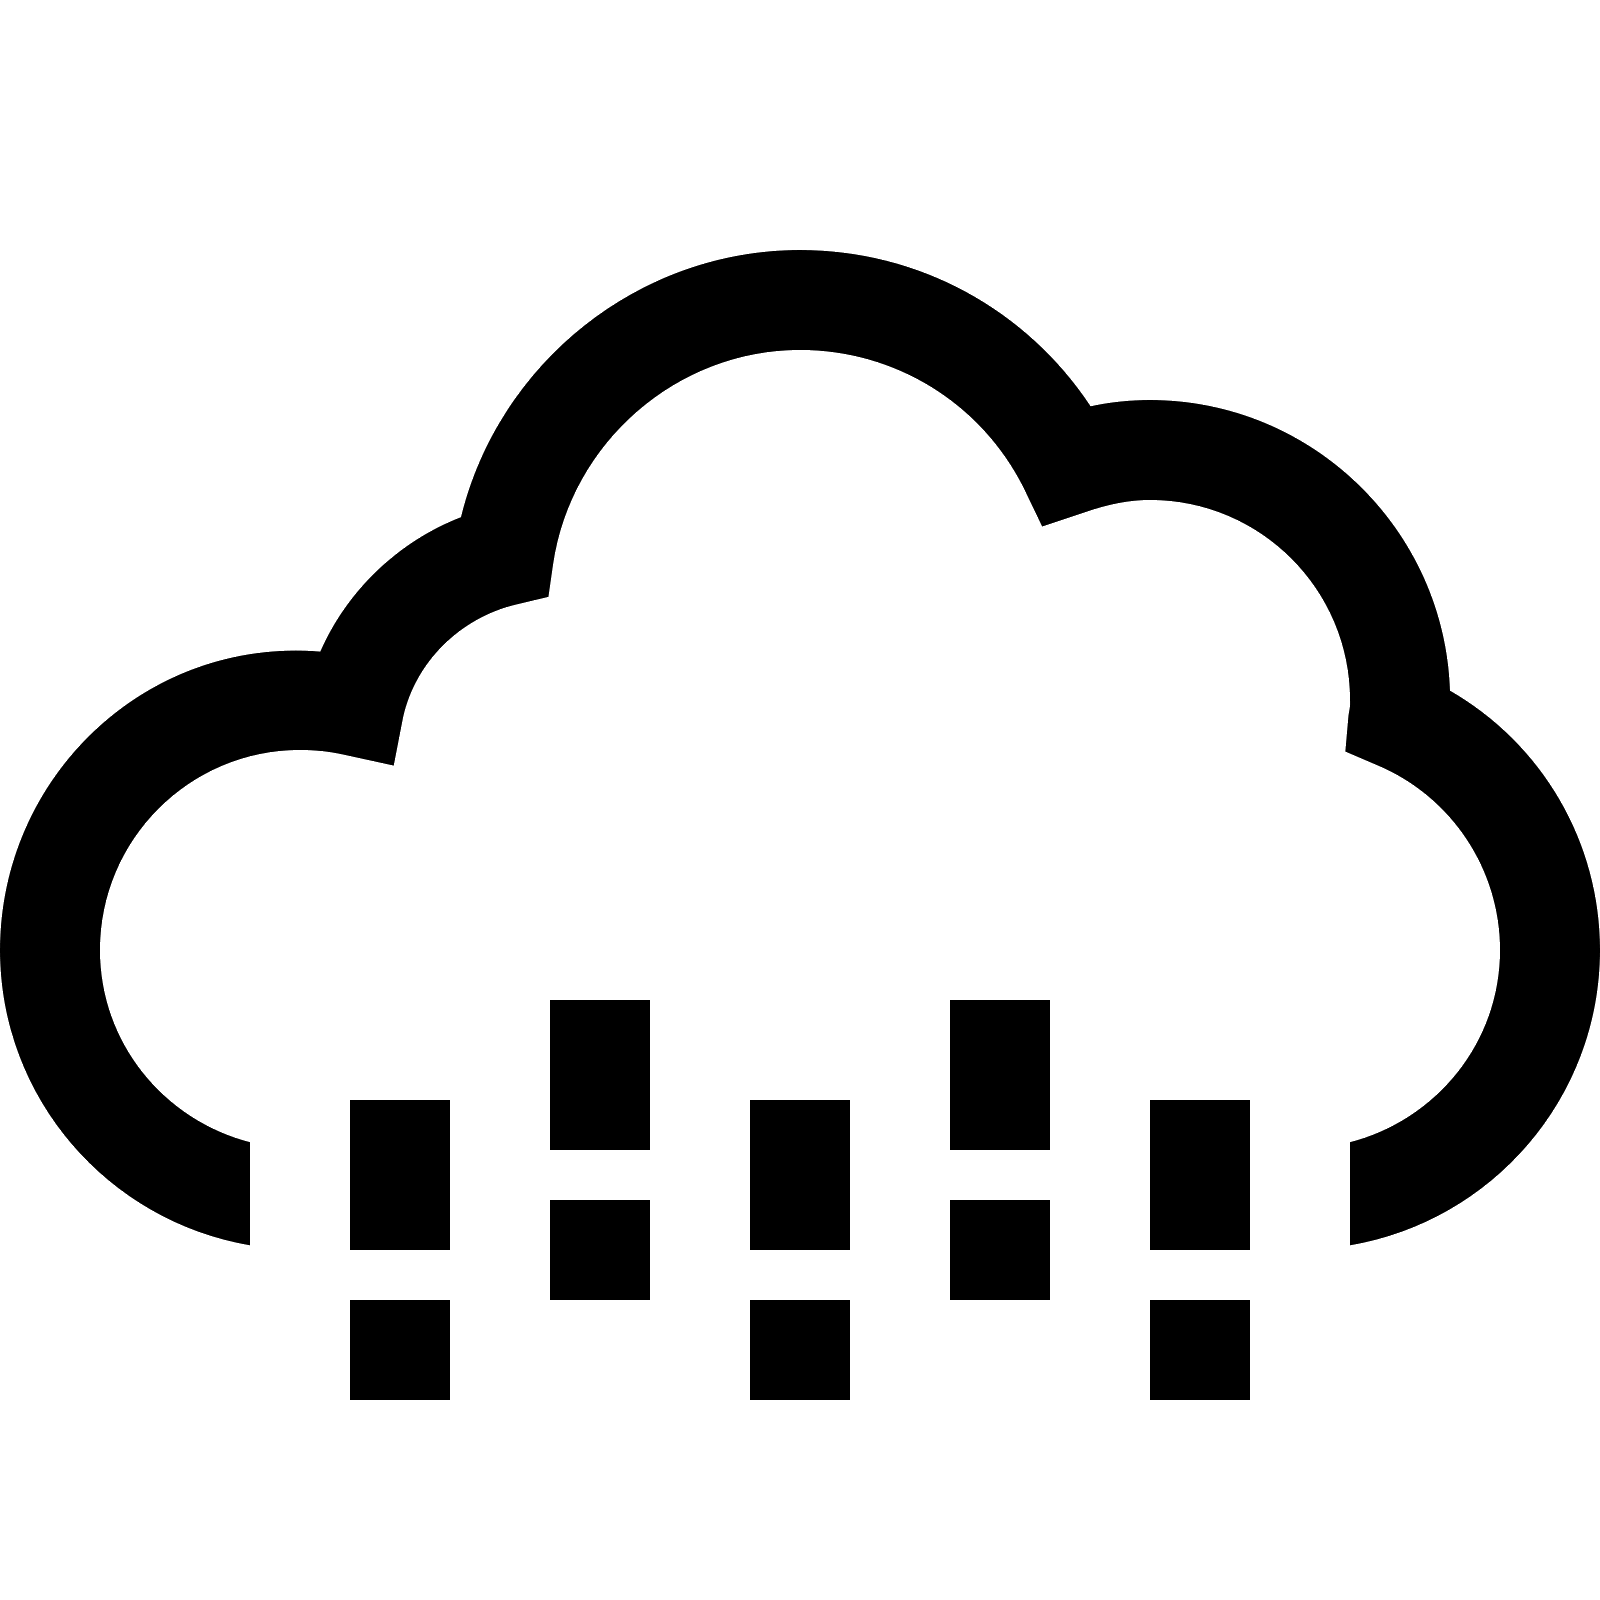 hight resolution of rain icon free download png and vector raindrop clipart